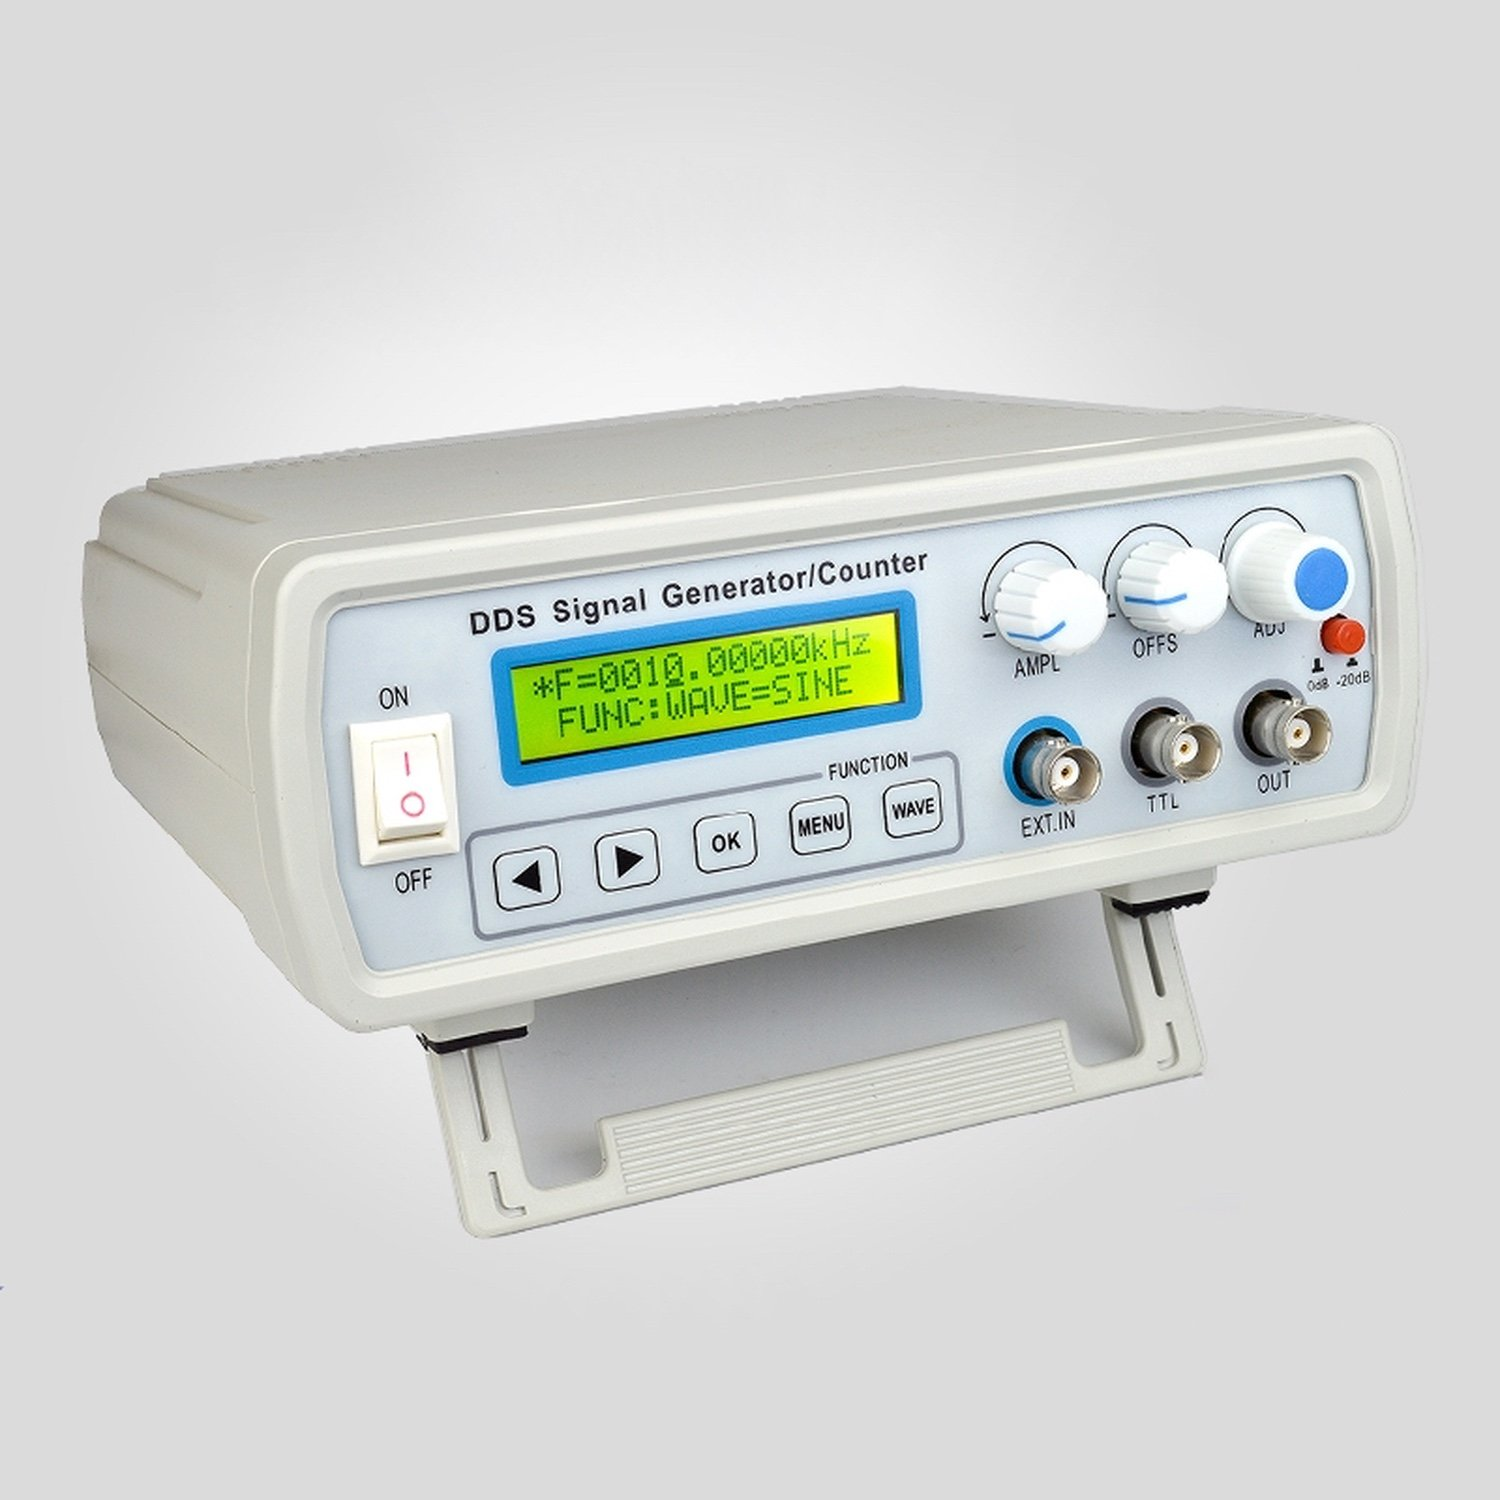 FY2105SDirect Digital Synthesis (DDS) Signal Generator 5Mhz and frequency counter 60mhz with USB with fy1000s function signal generator dds signal source 60mhz frequency counter dual ttl output